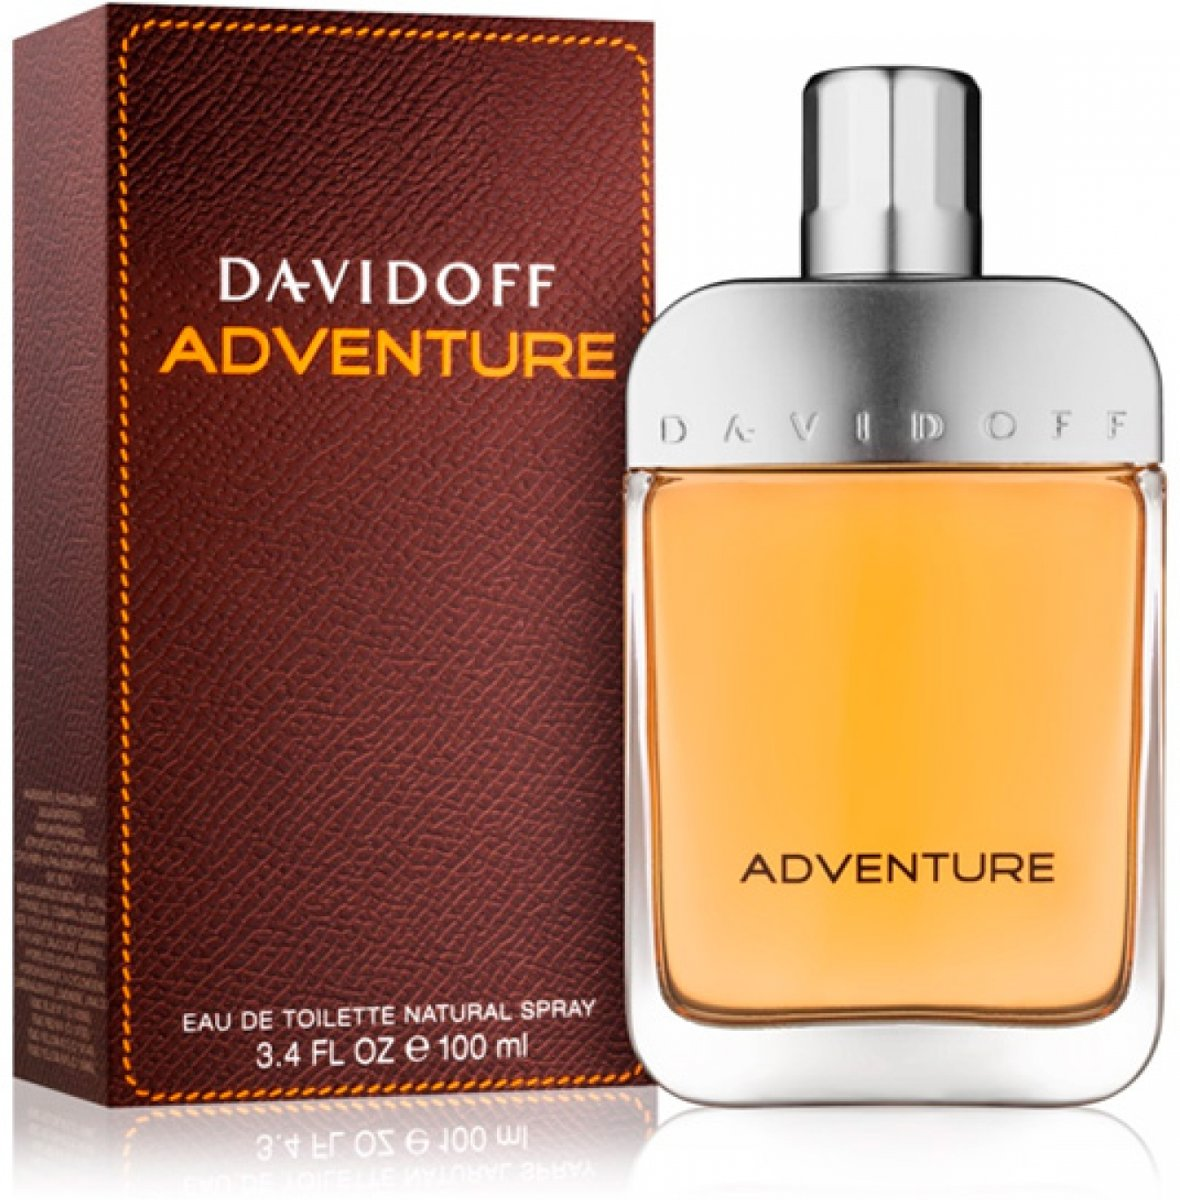 Davidoff Adventure 100 ml - Eau de toilette - for Men thumbnail